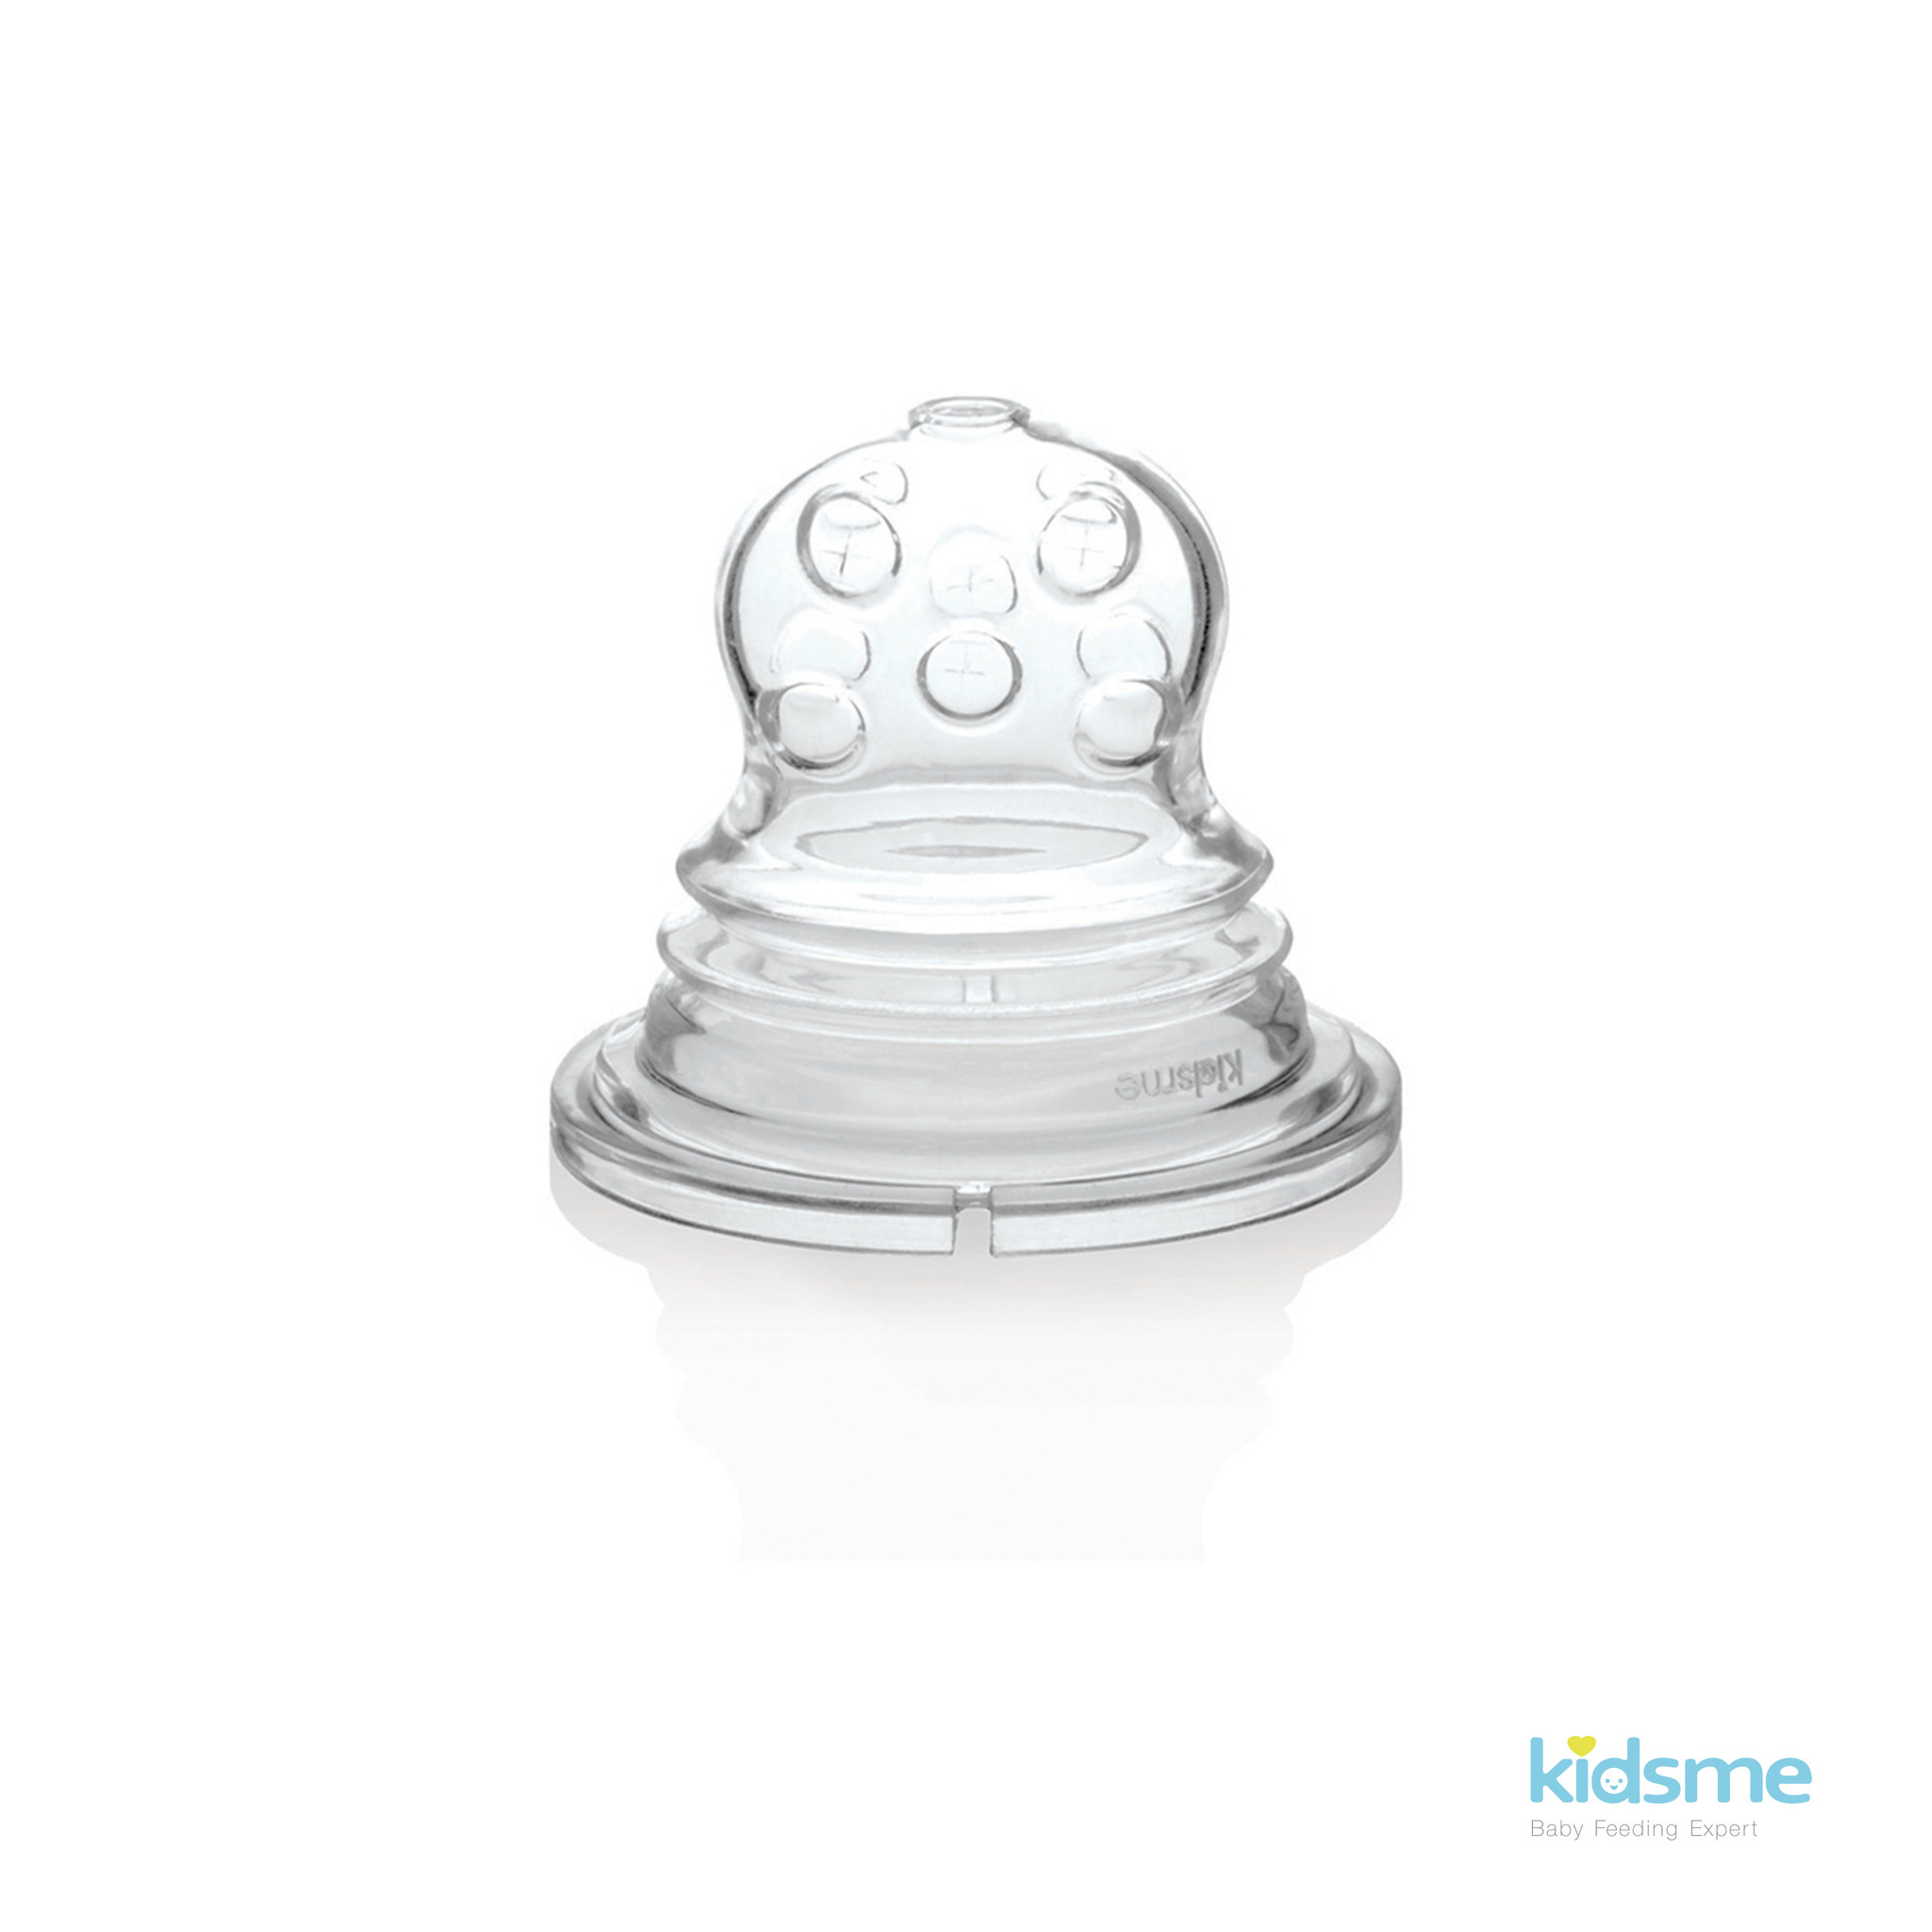 Kidsme Kidsme - Silicone Sac for Food Squeezer - 2 Pcs - Cross Holes